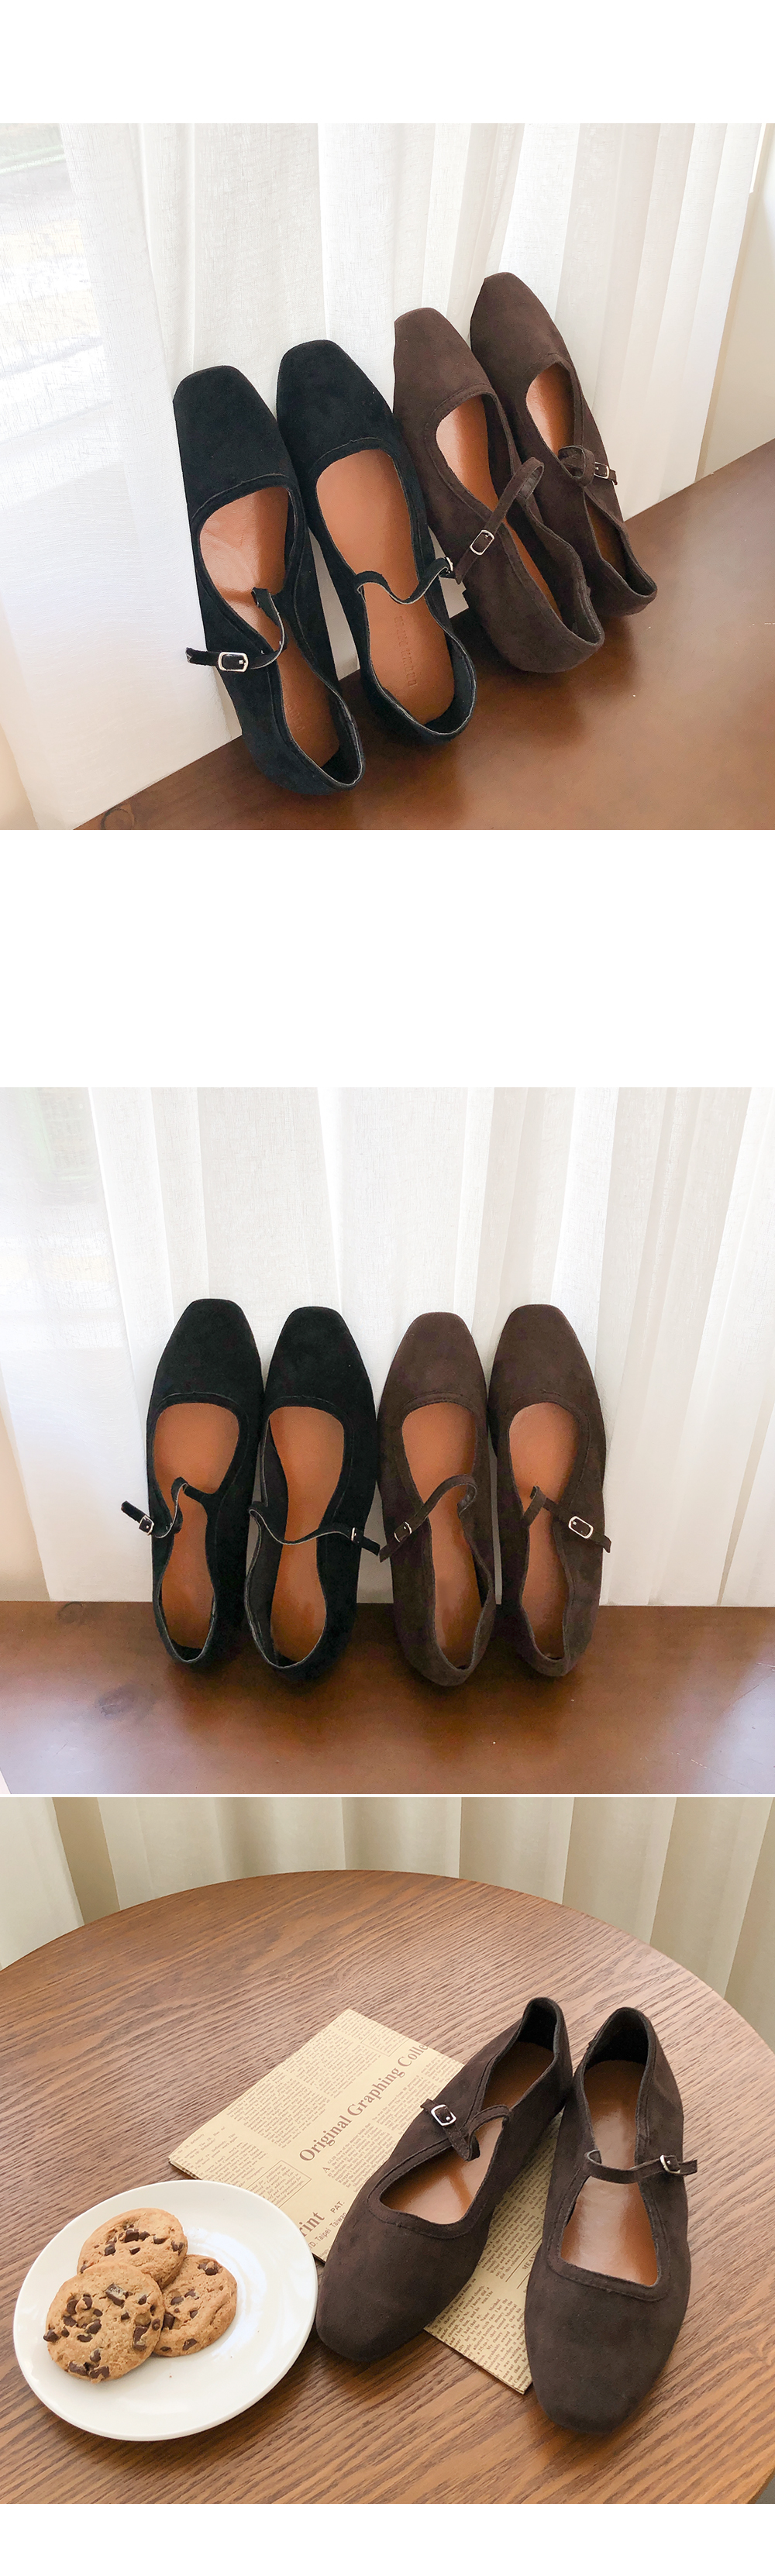 Suede mary jane shoes